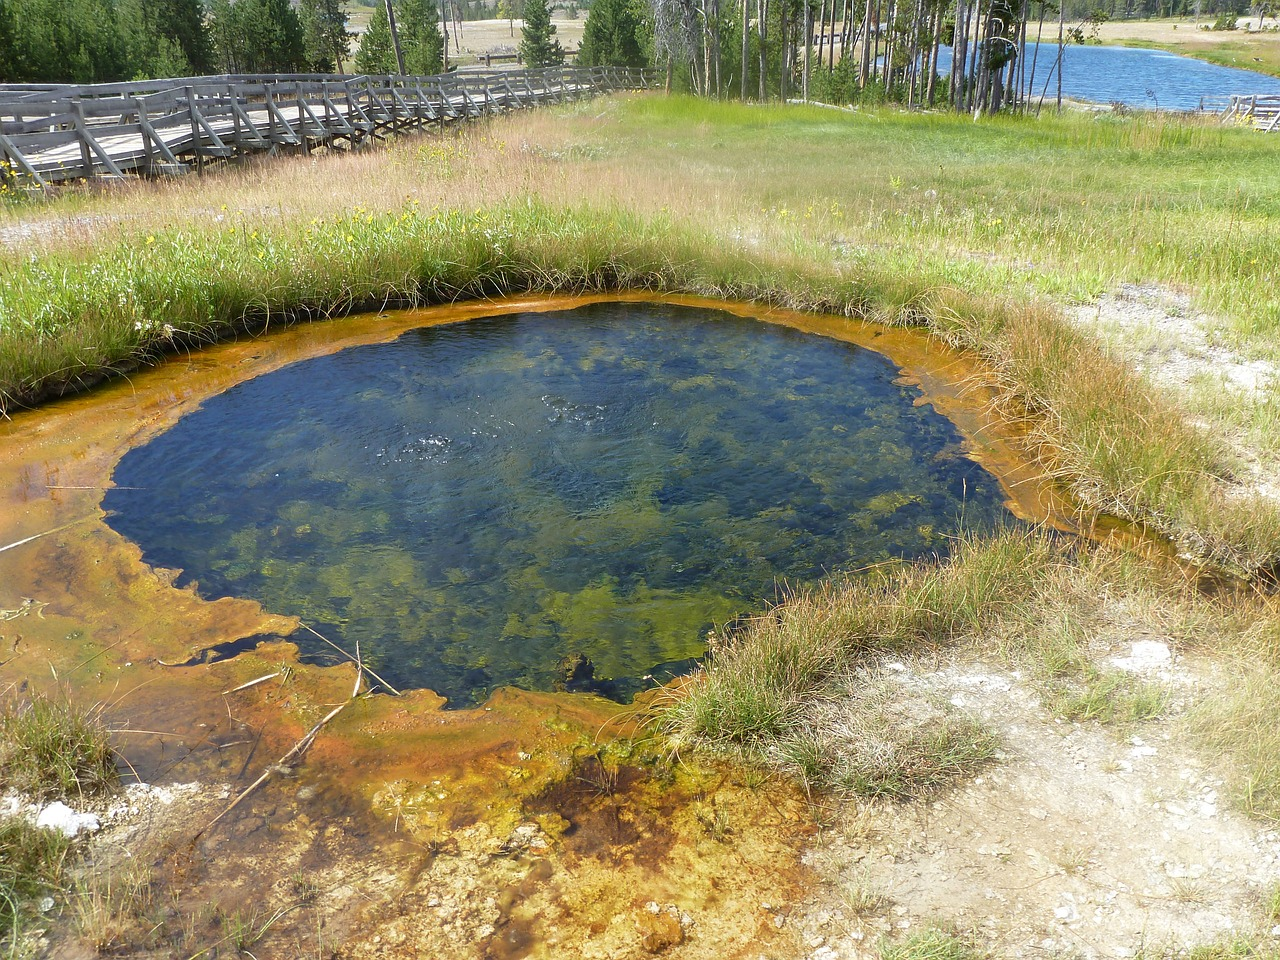 yellowstone national park geyser crater free photo